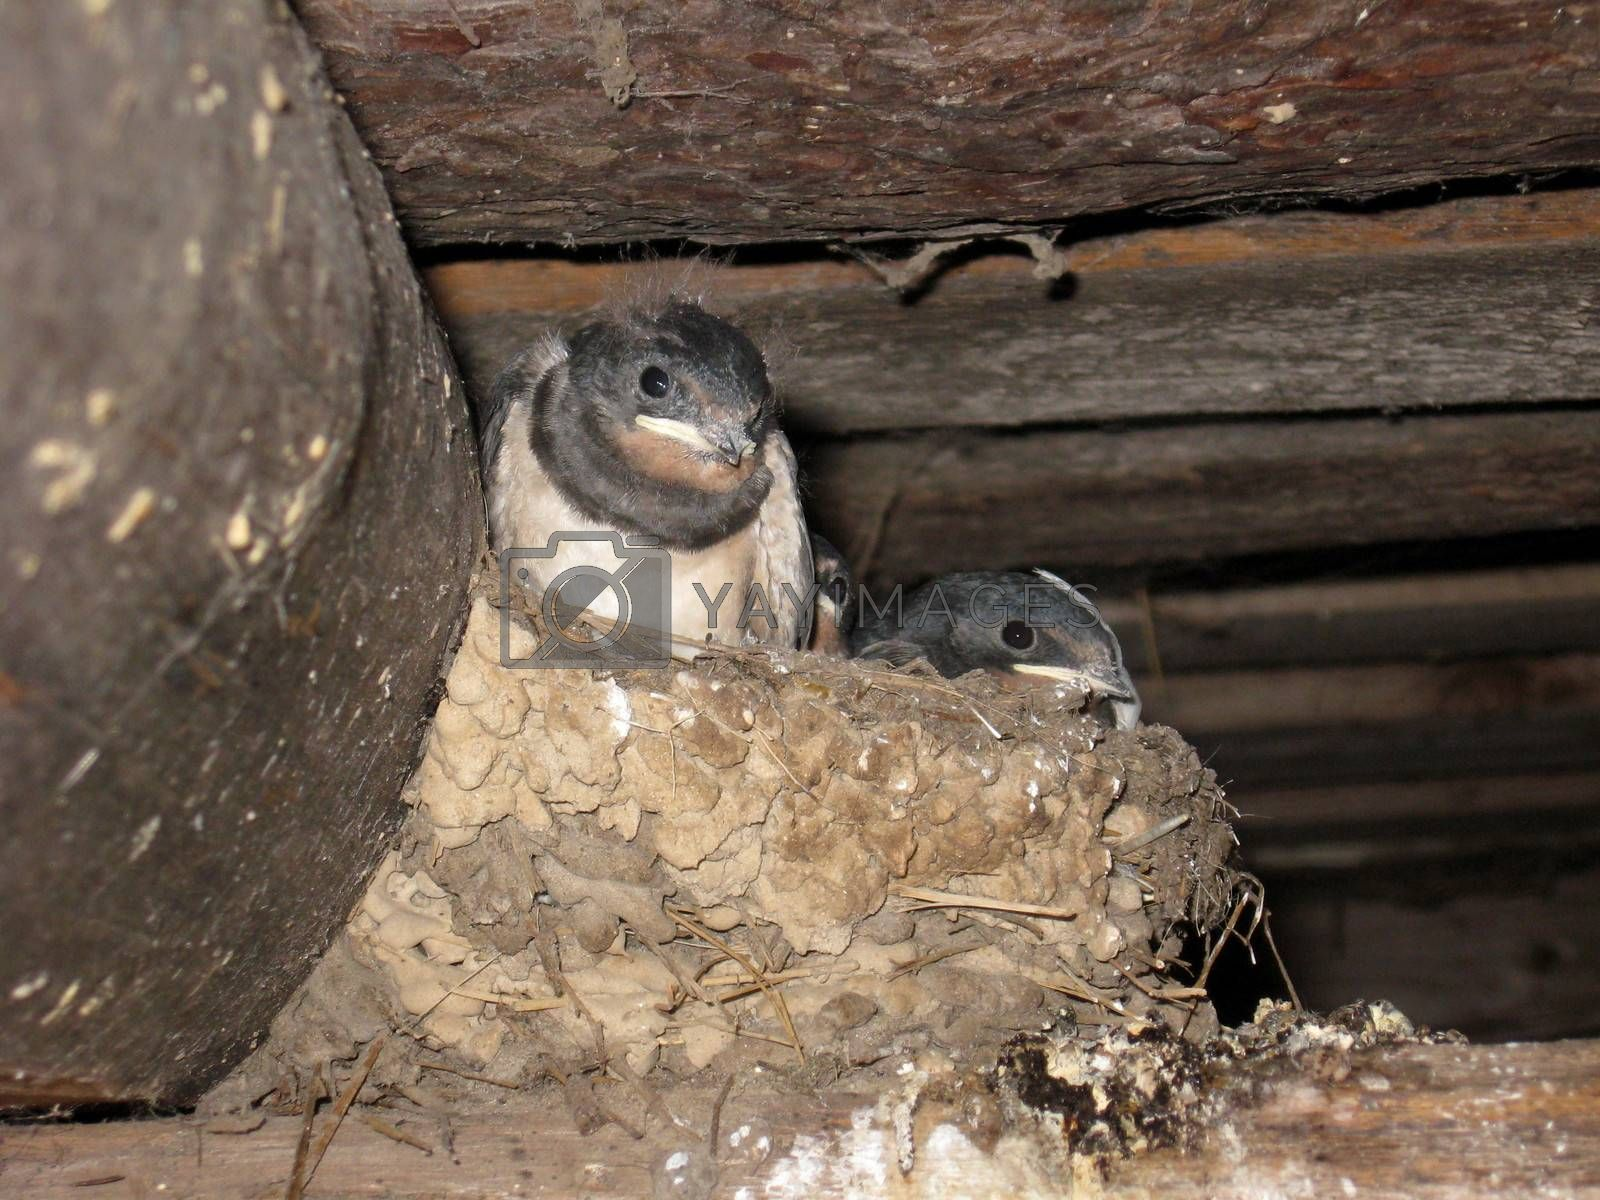 nest of swallow with parent and nestlings